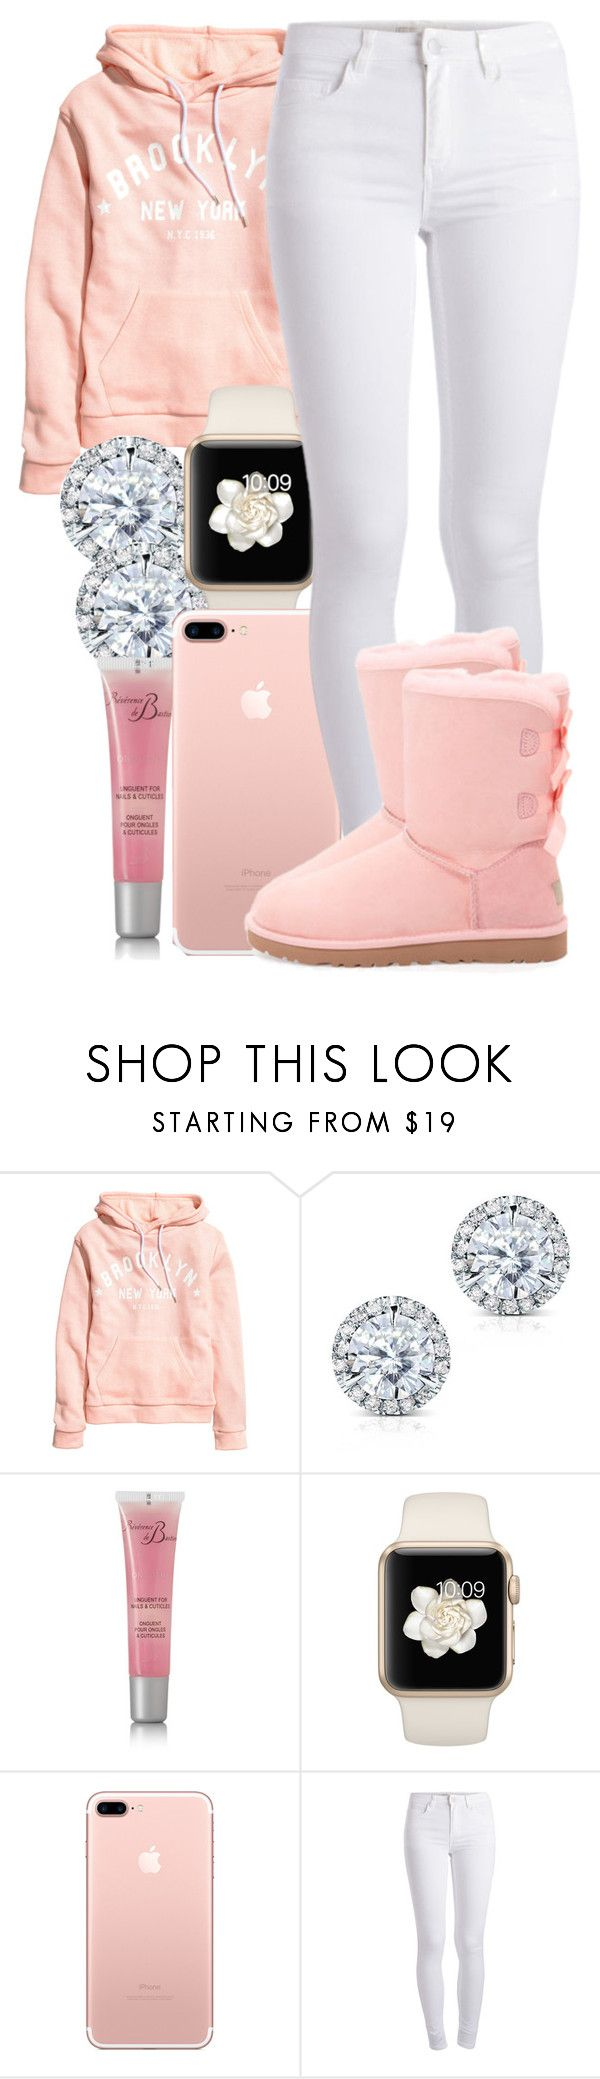 """""""(Cuffing season)Eric Bellinger"""" by guwapshawty ❤ liked on Polyvore featuring H&M, Kobelli, Révérence de Bastien, Pieces and UGG Australia"""